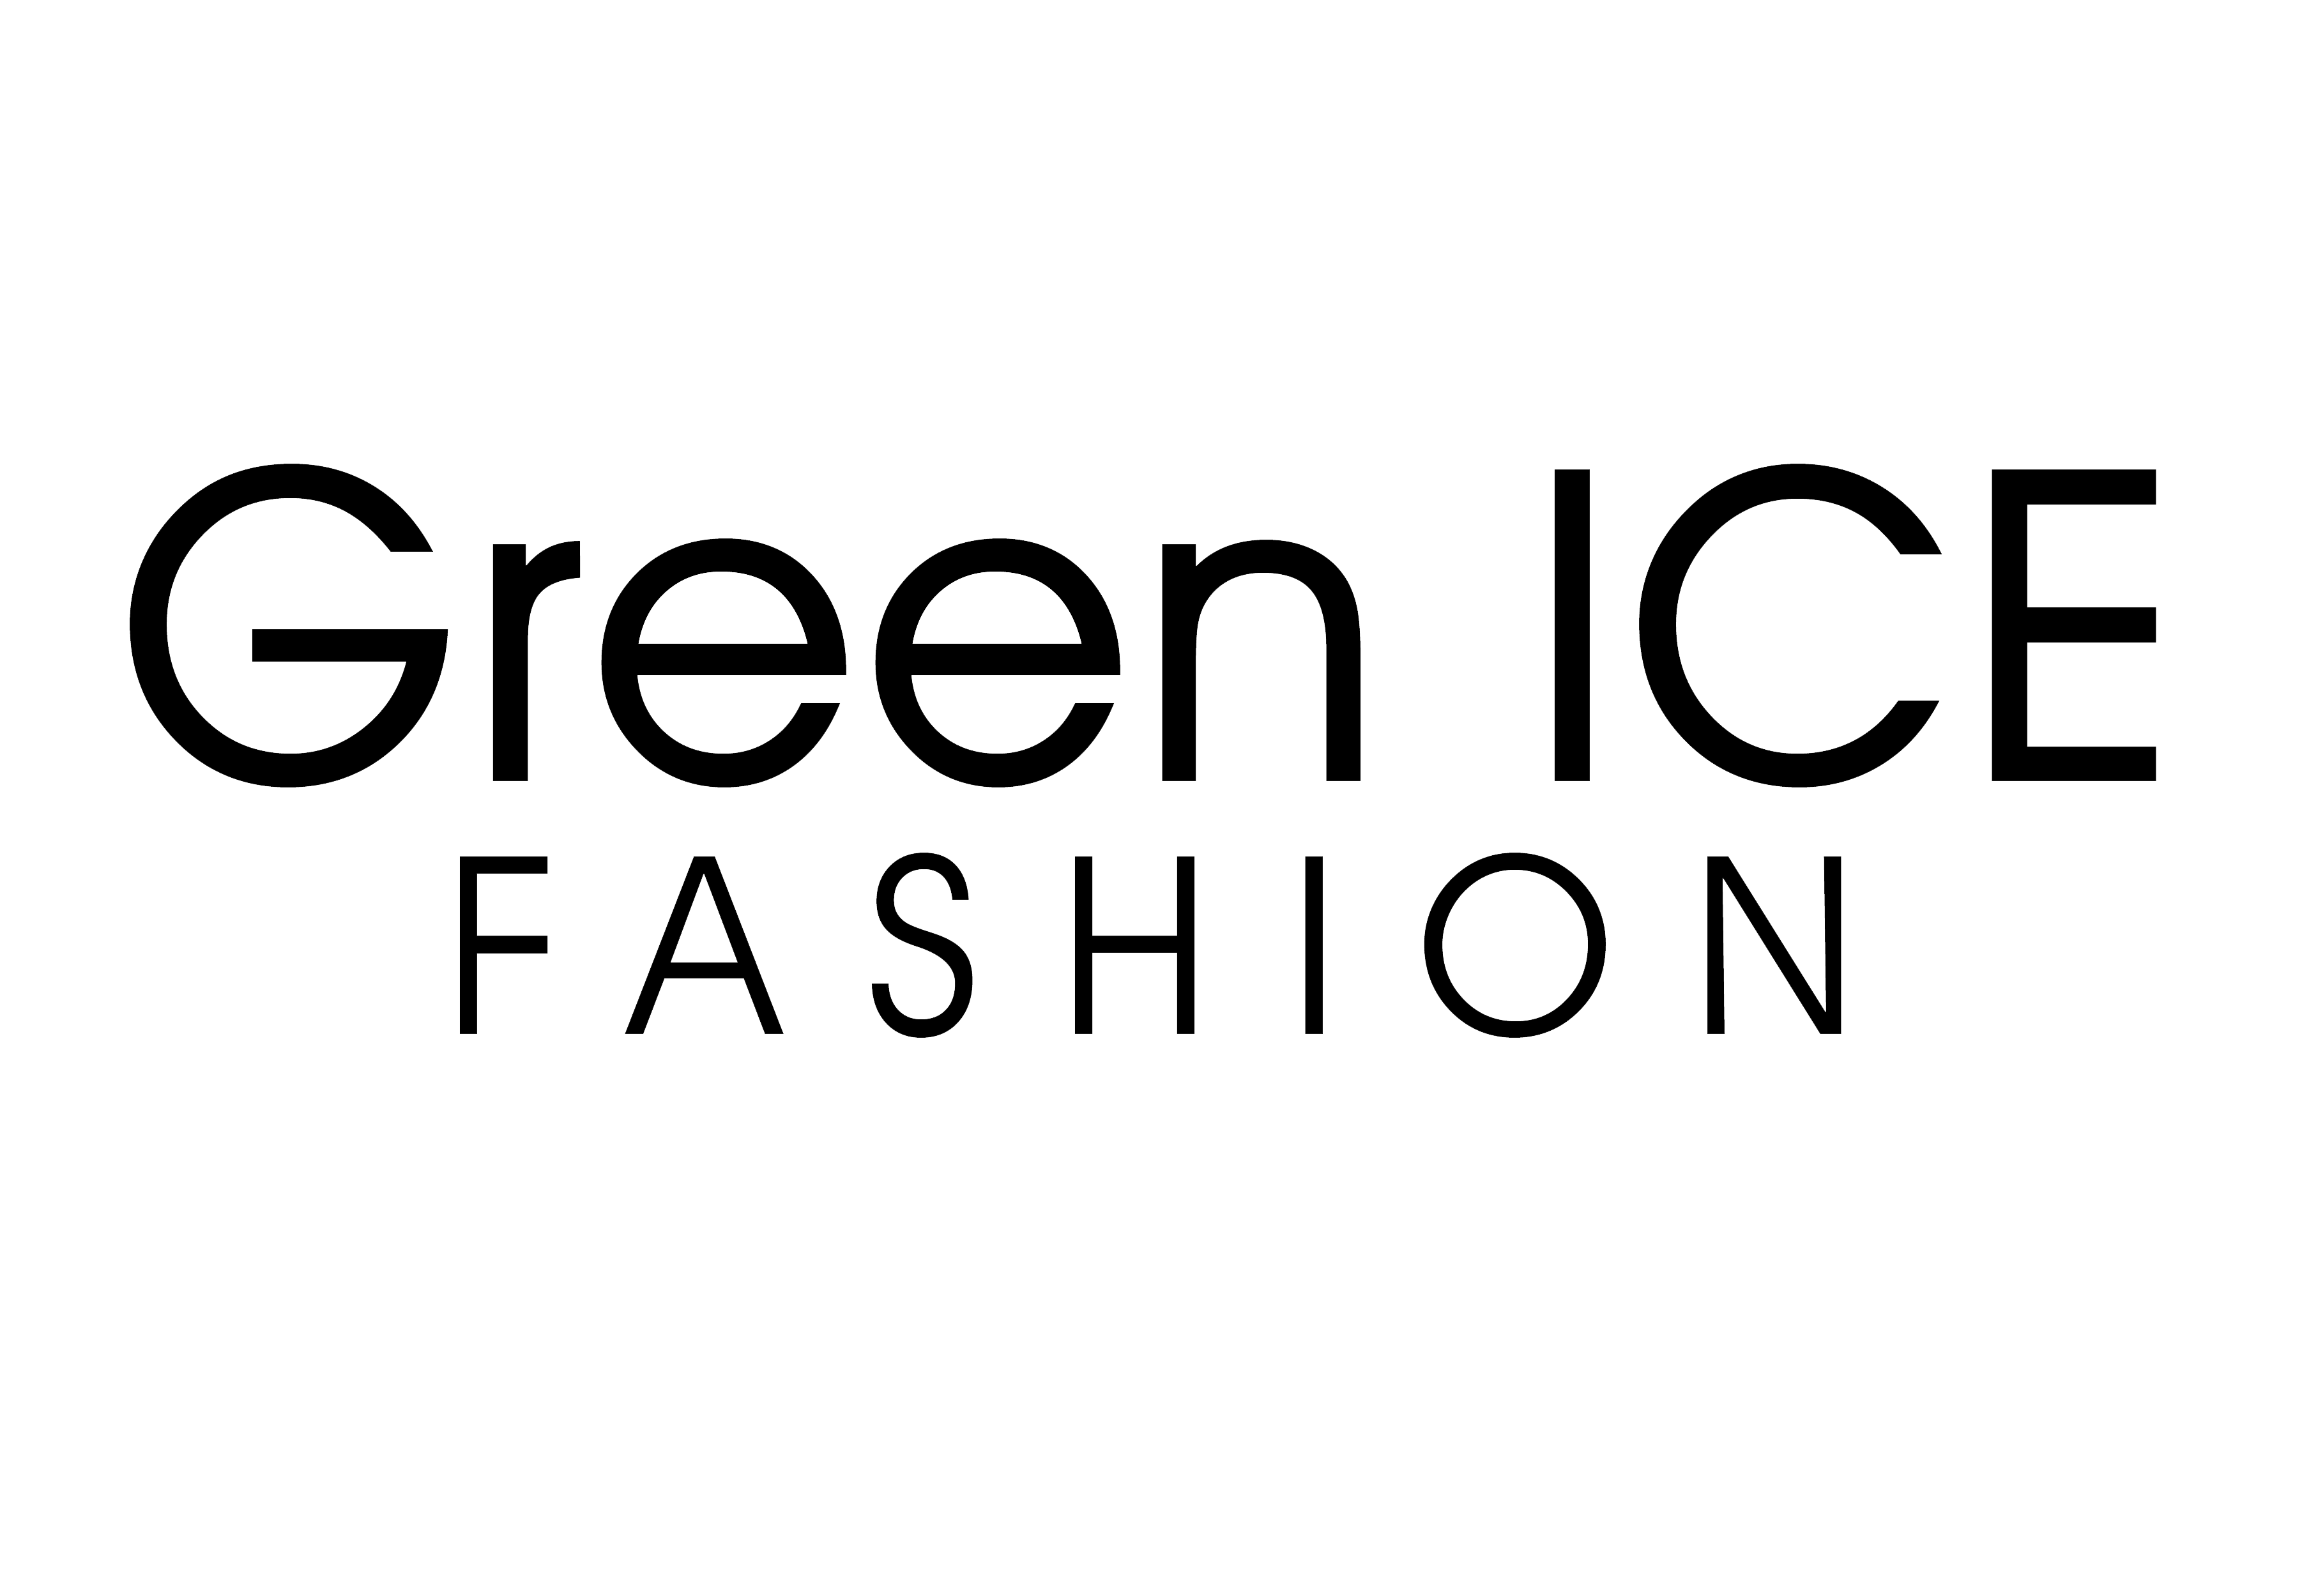 Green ICE logo